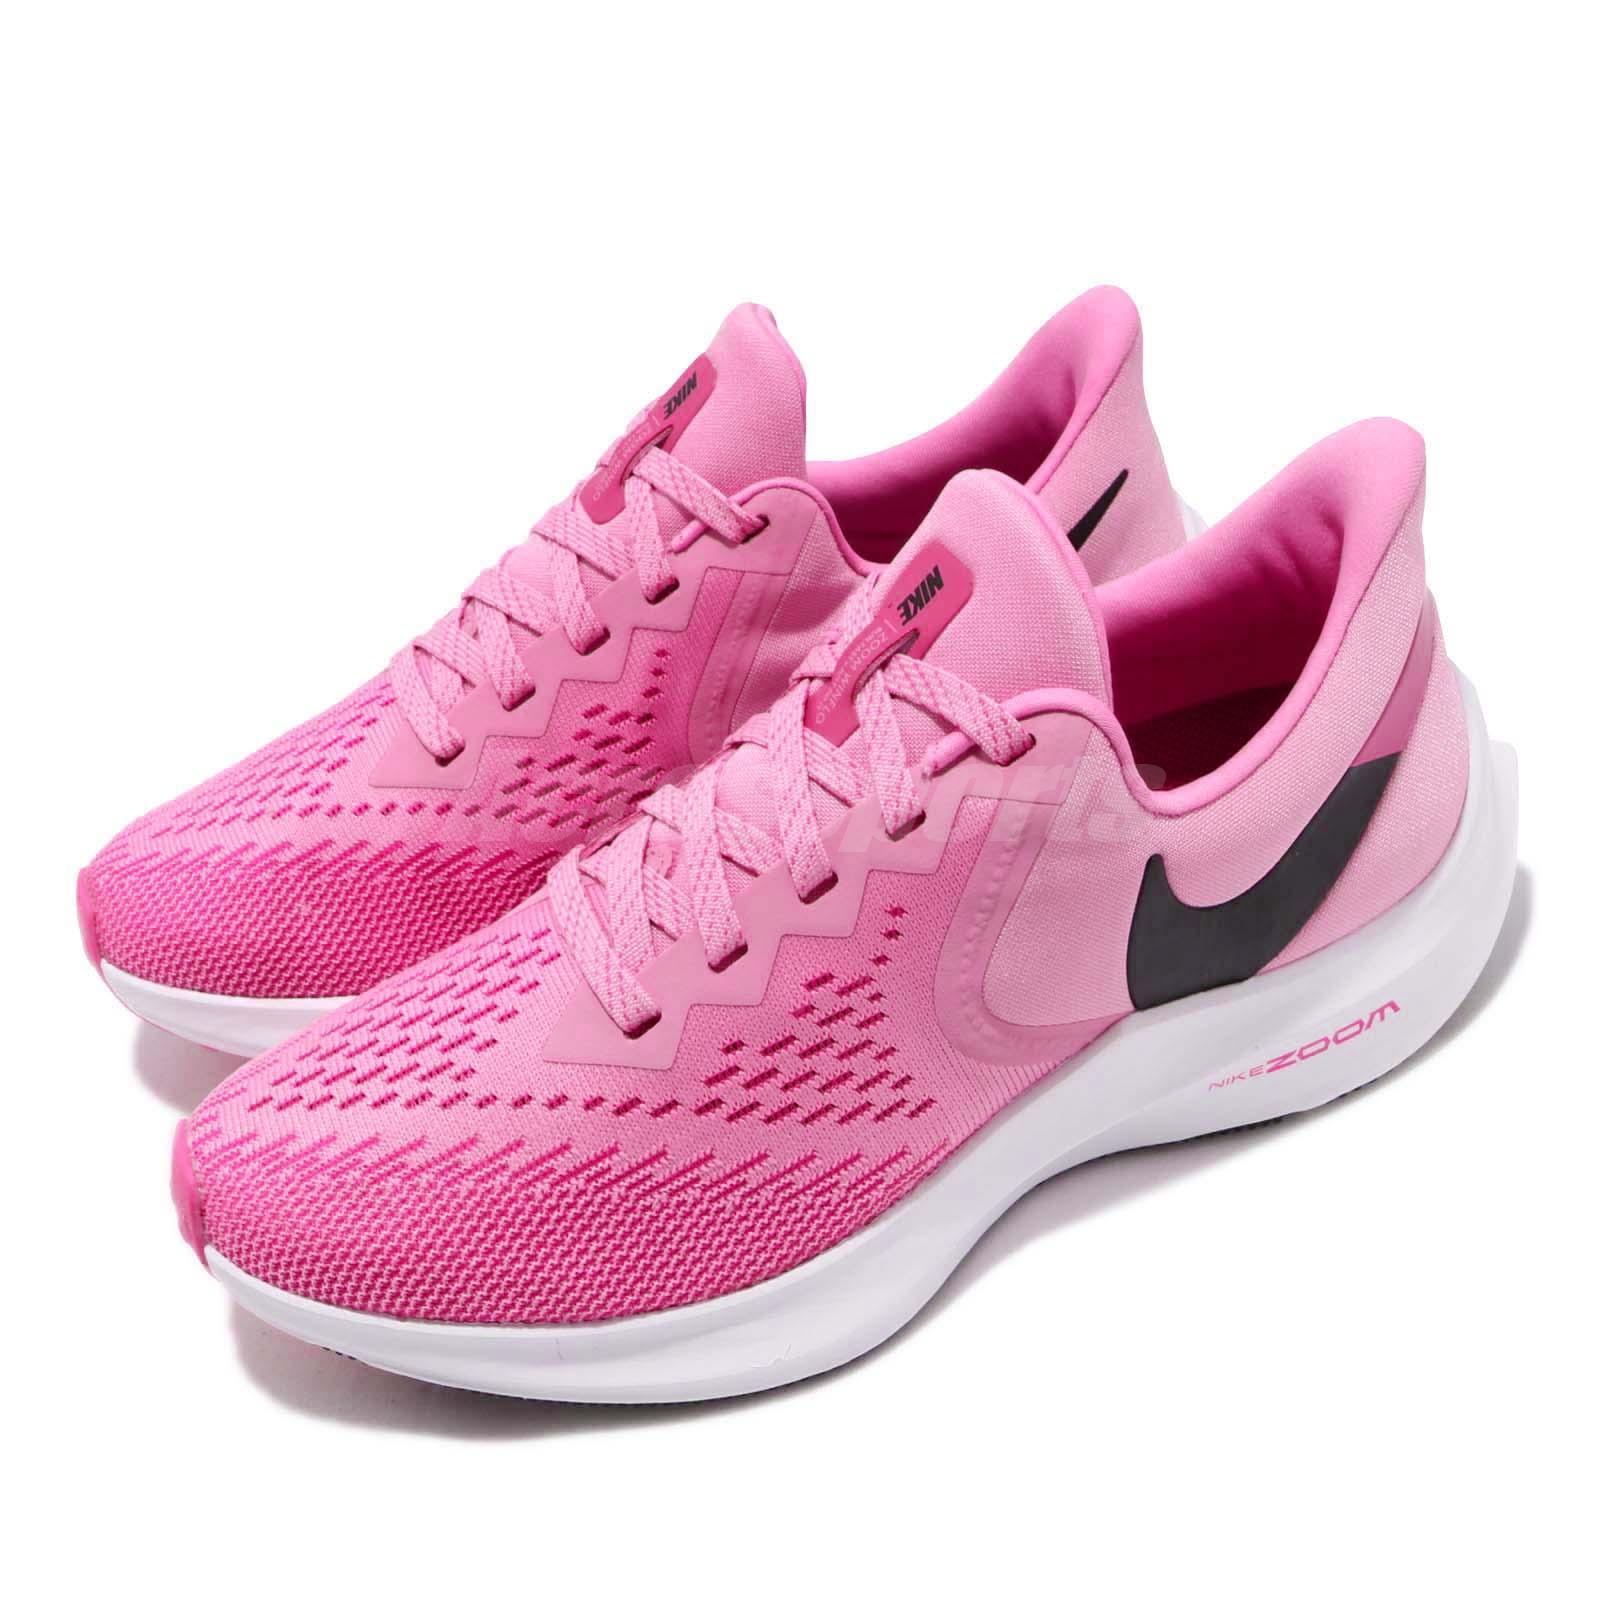 Nike Wmns Zoom Winflo 6 Psychic Pink